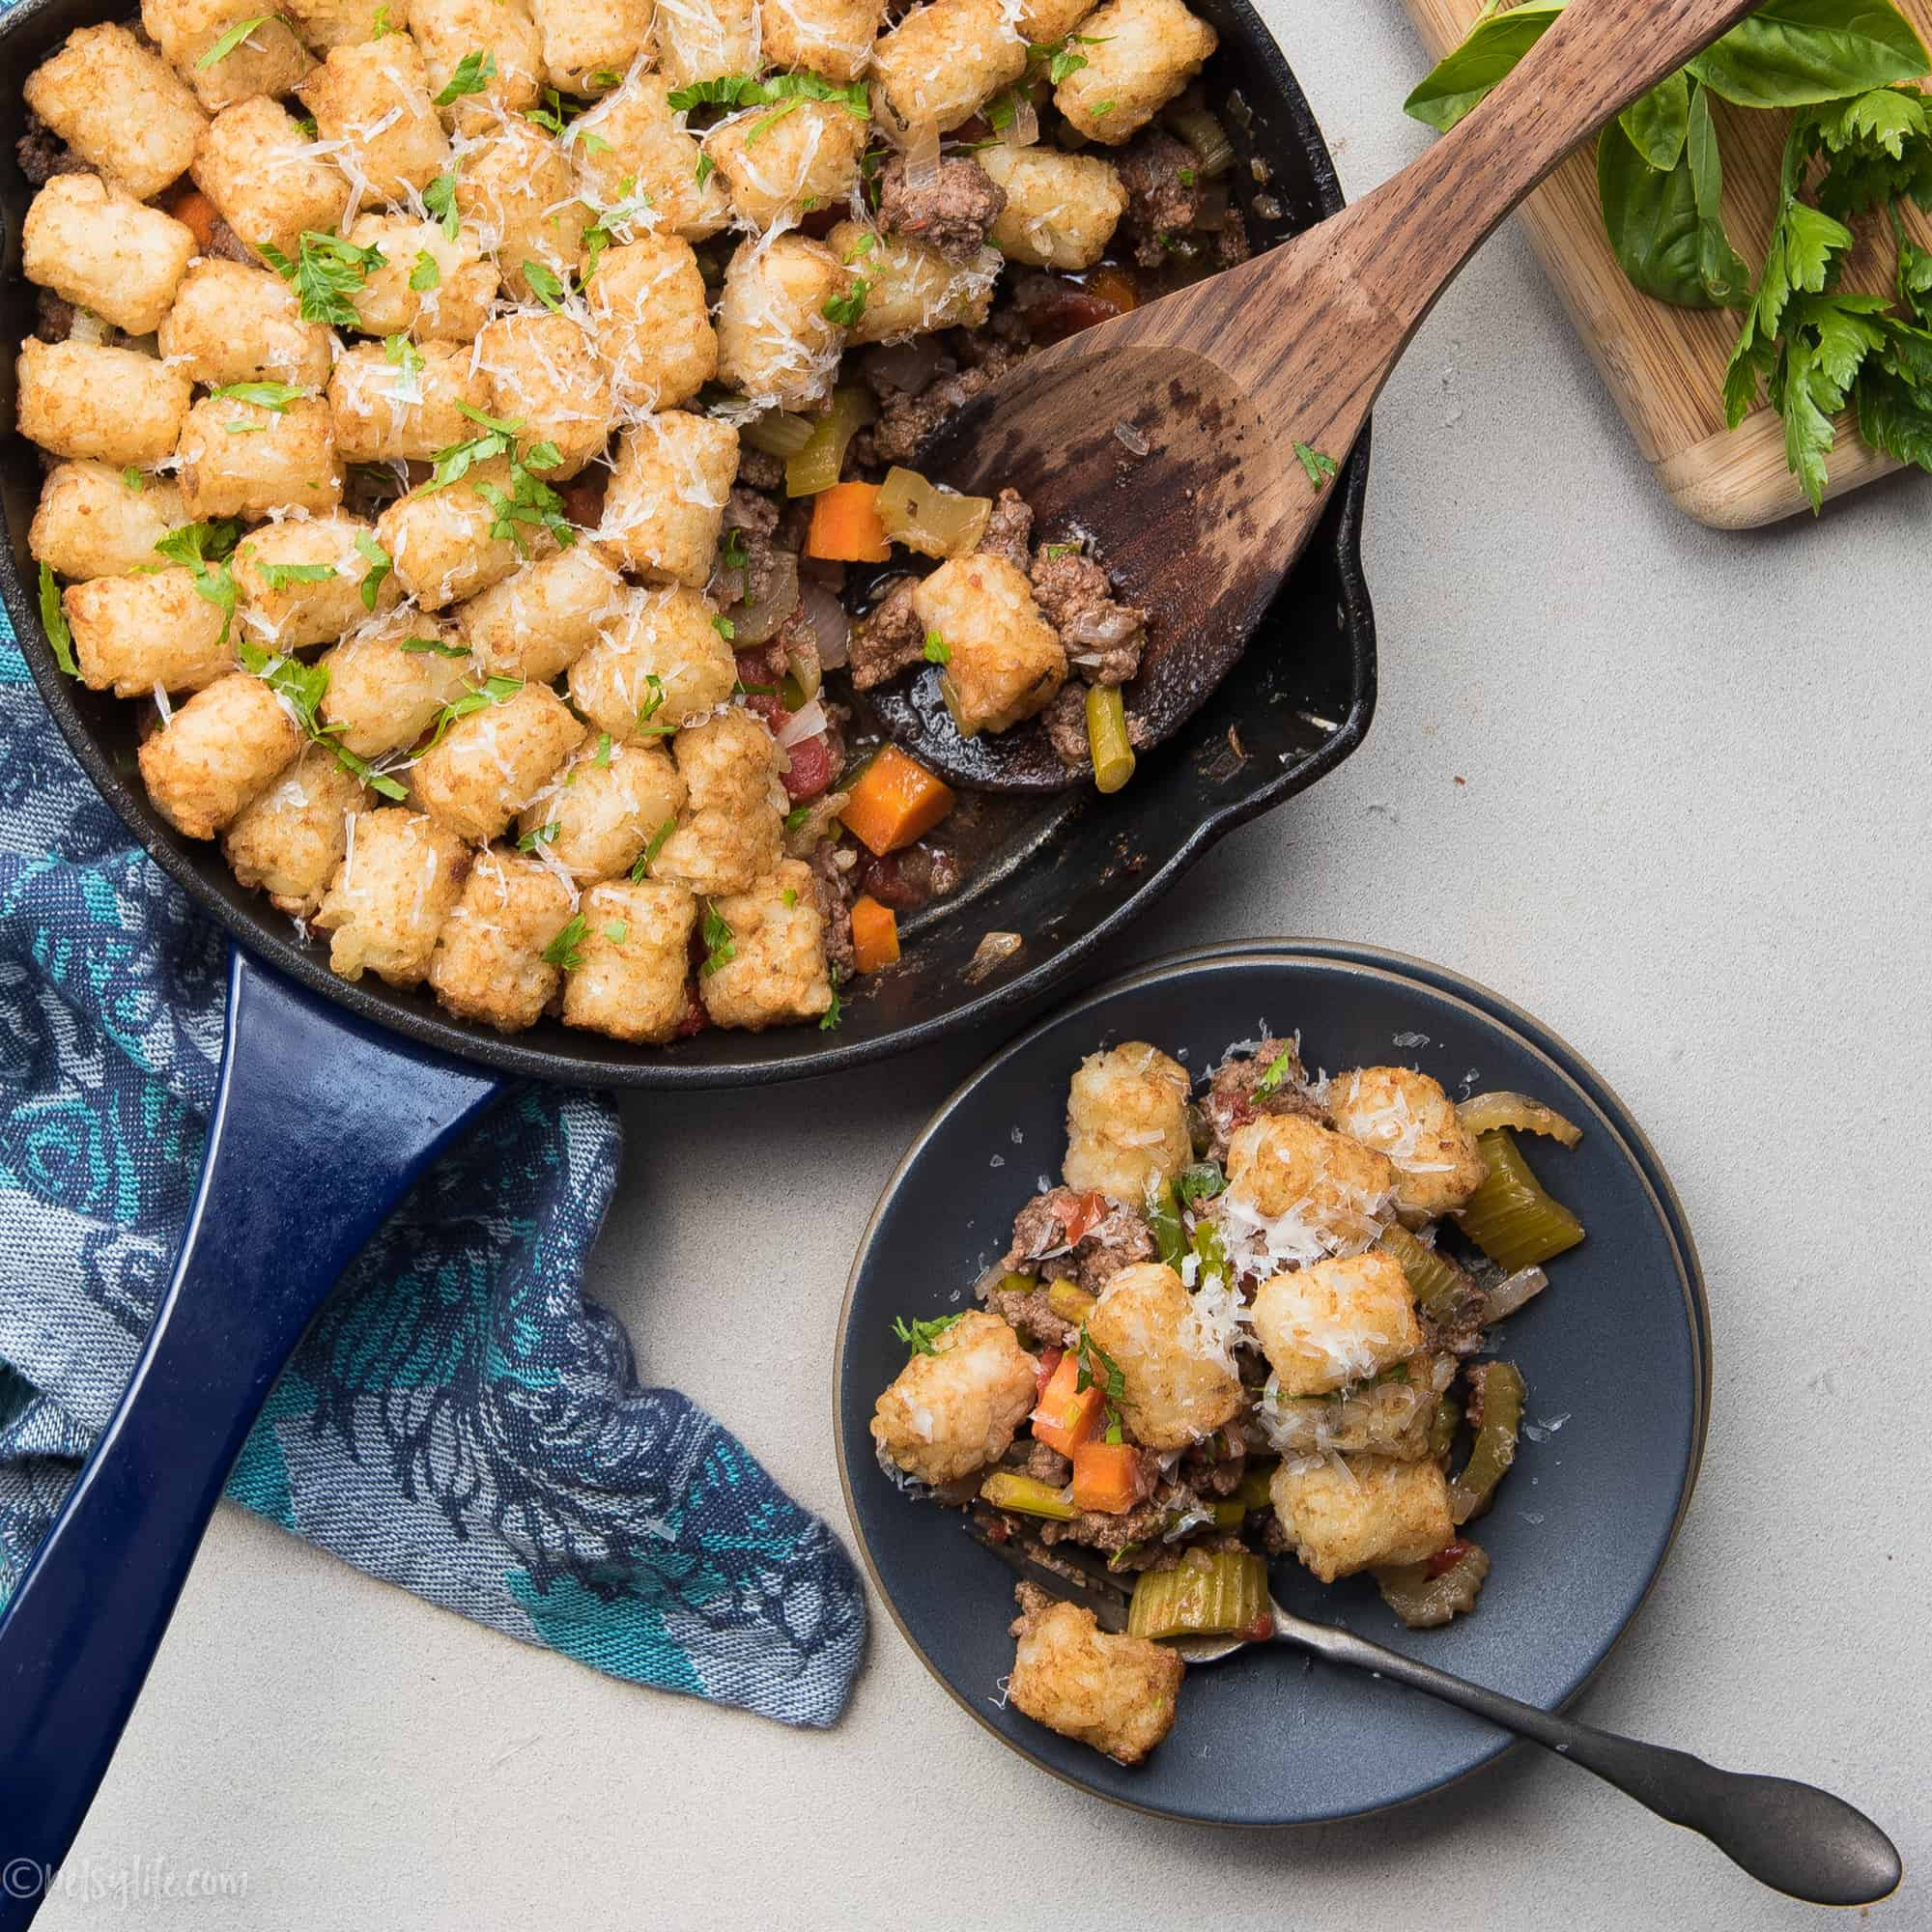 serving of tater tot casserole on a dark plate next to a skillet full of casserole